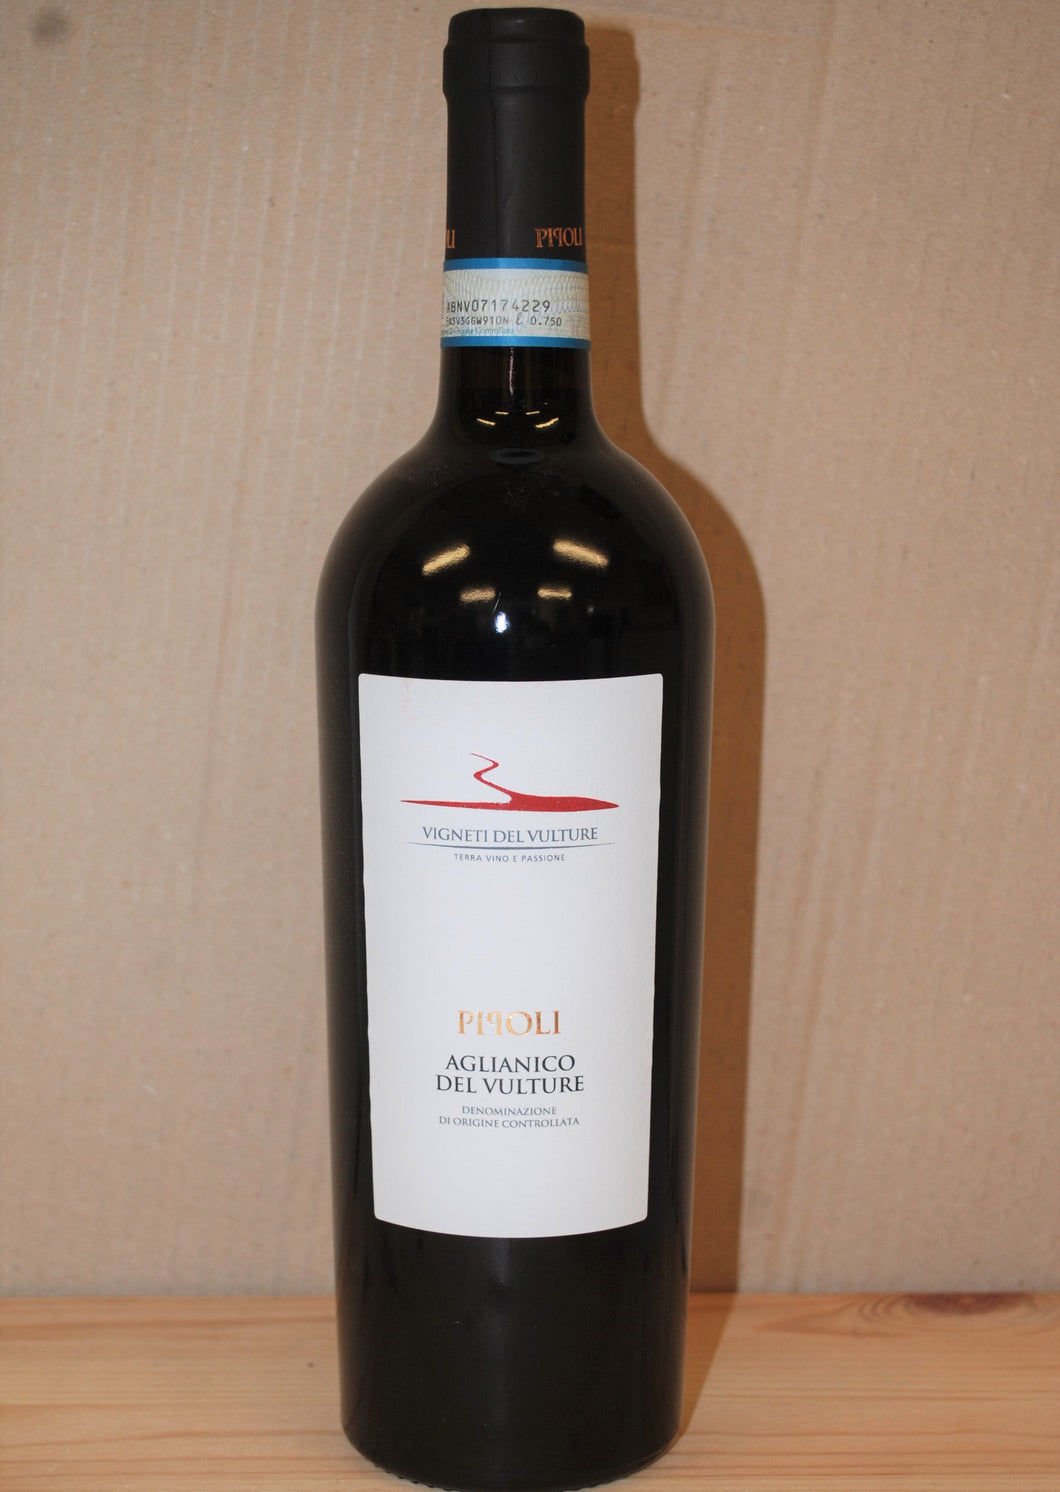 Aglianico Vigneti del Vulture Pipoli DOC - 750ml bottle